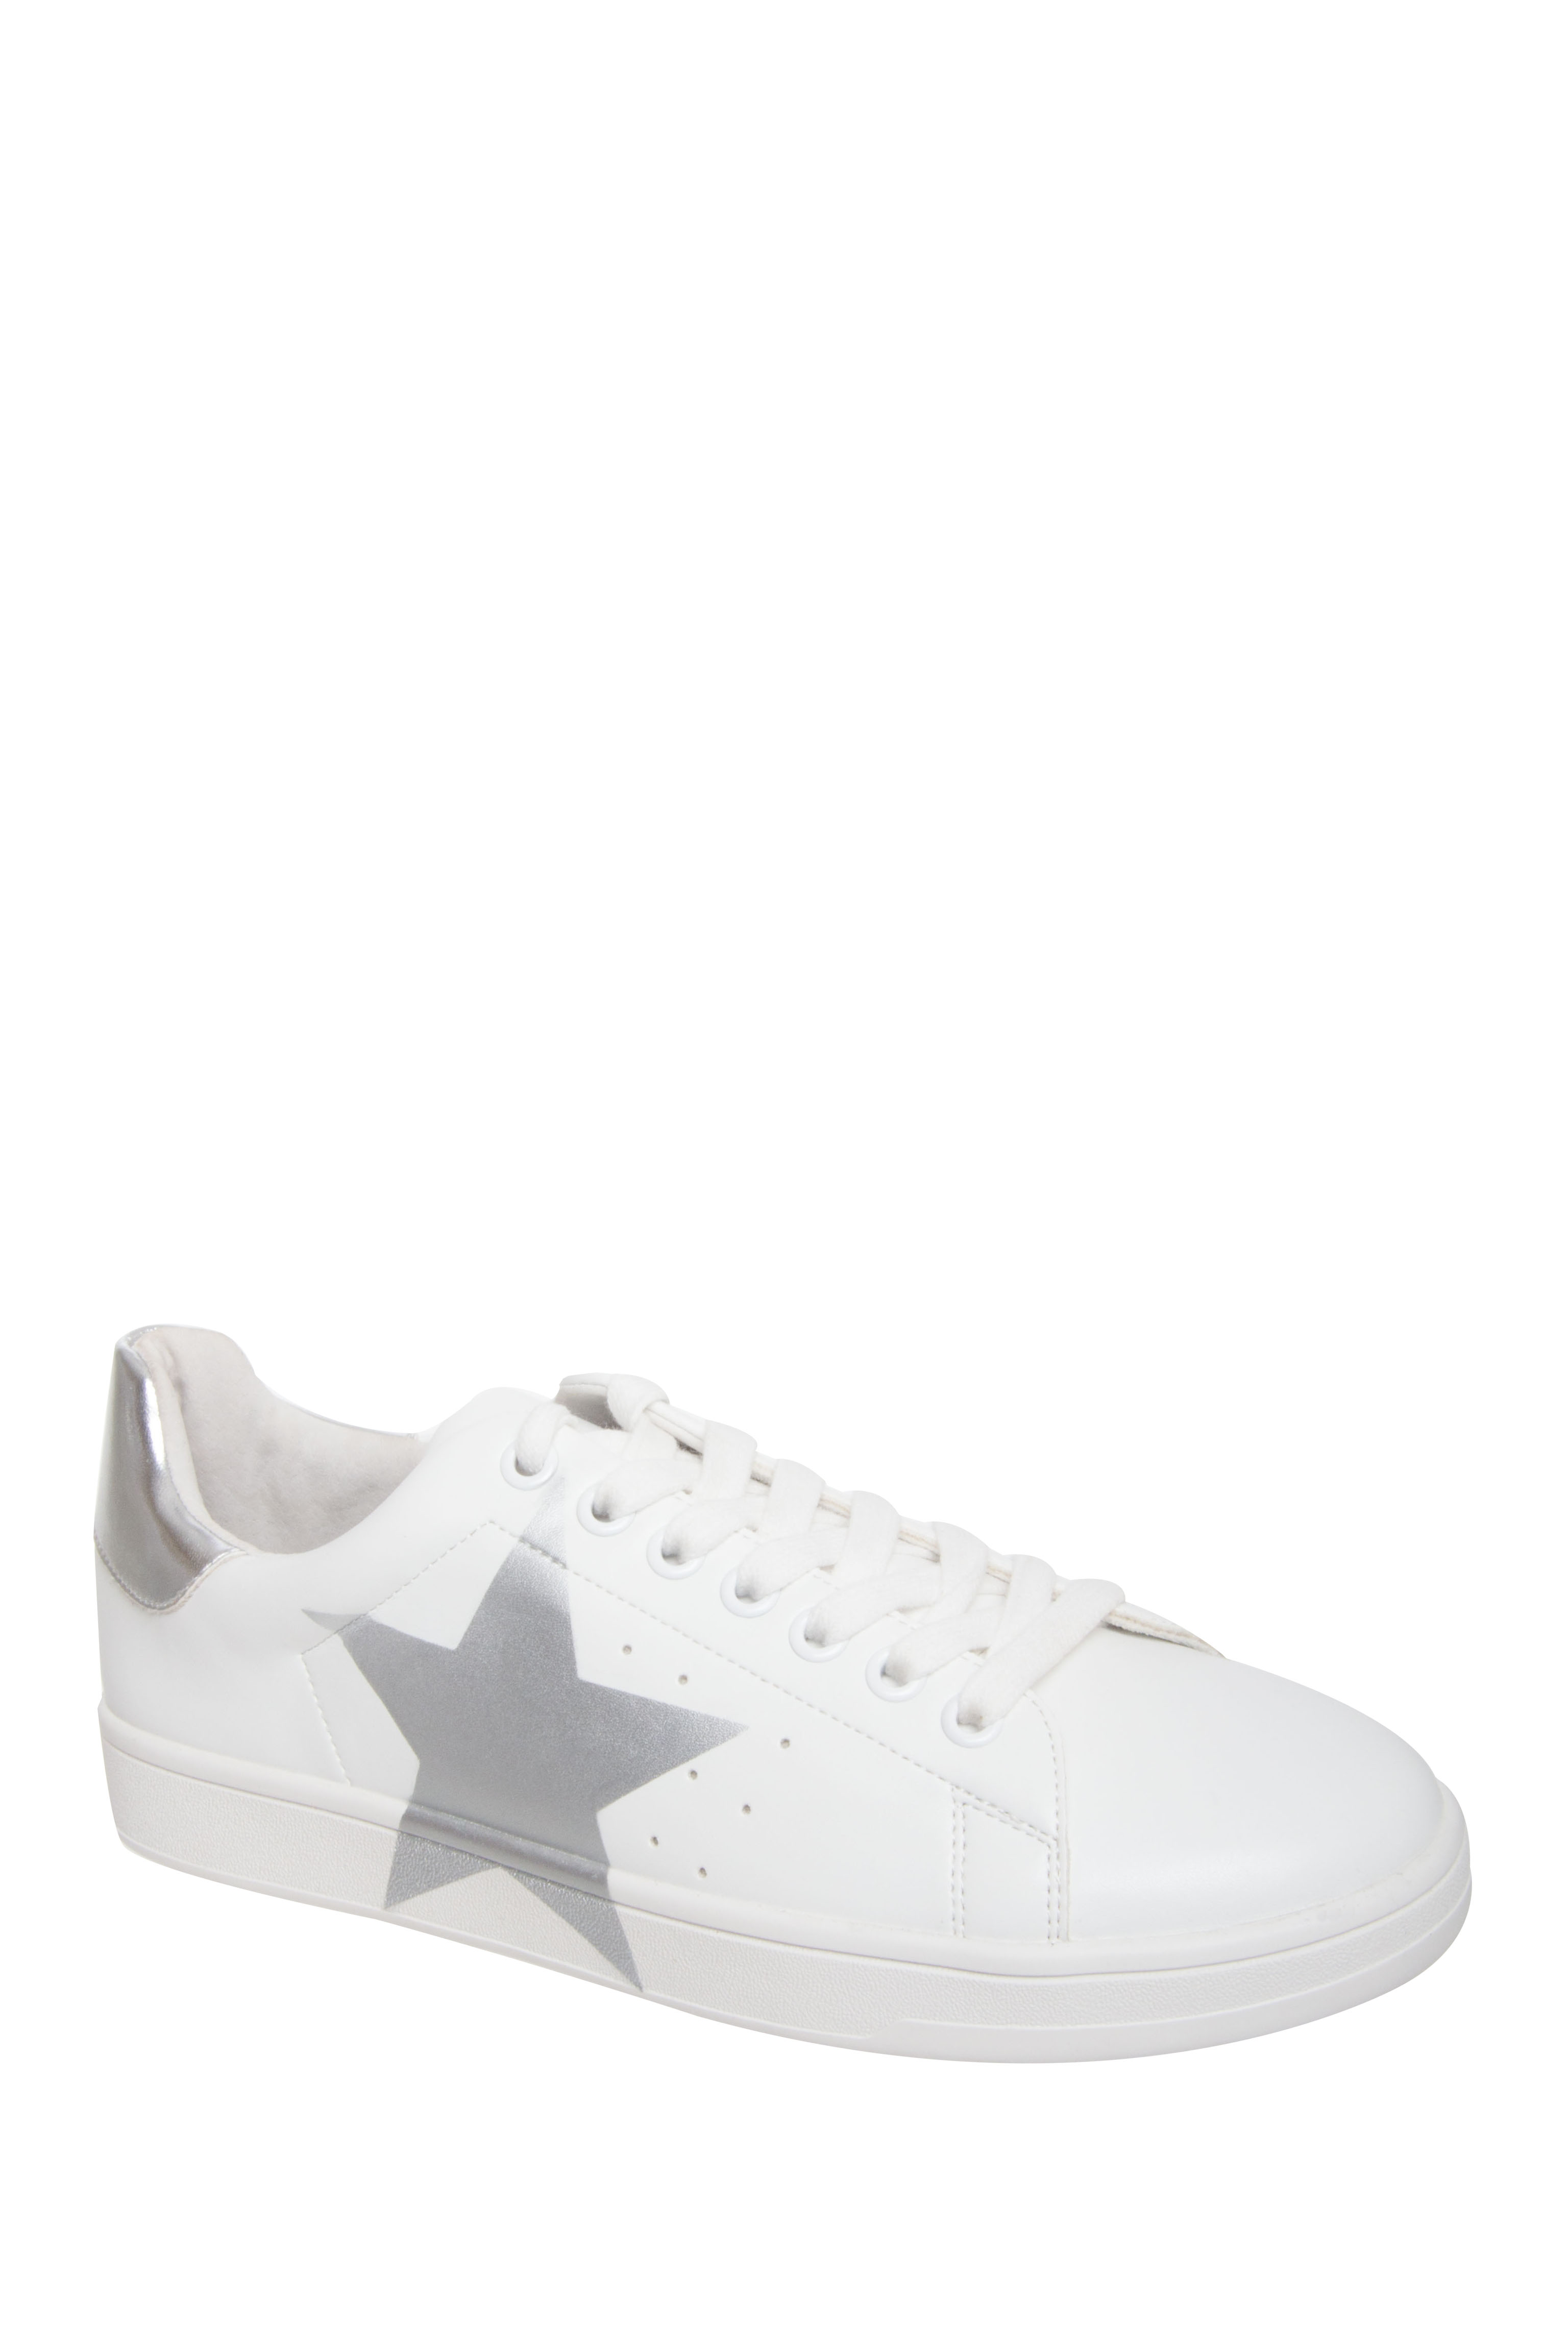 Steve Madden Rayner Low Top Sneakers - White / Silver